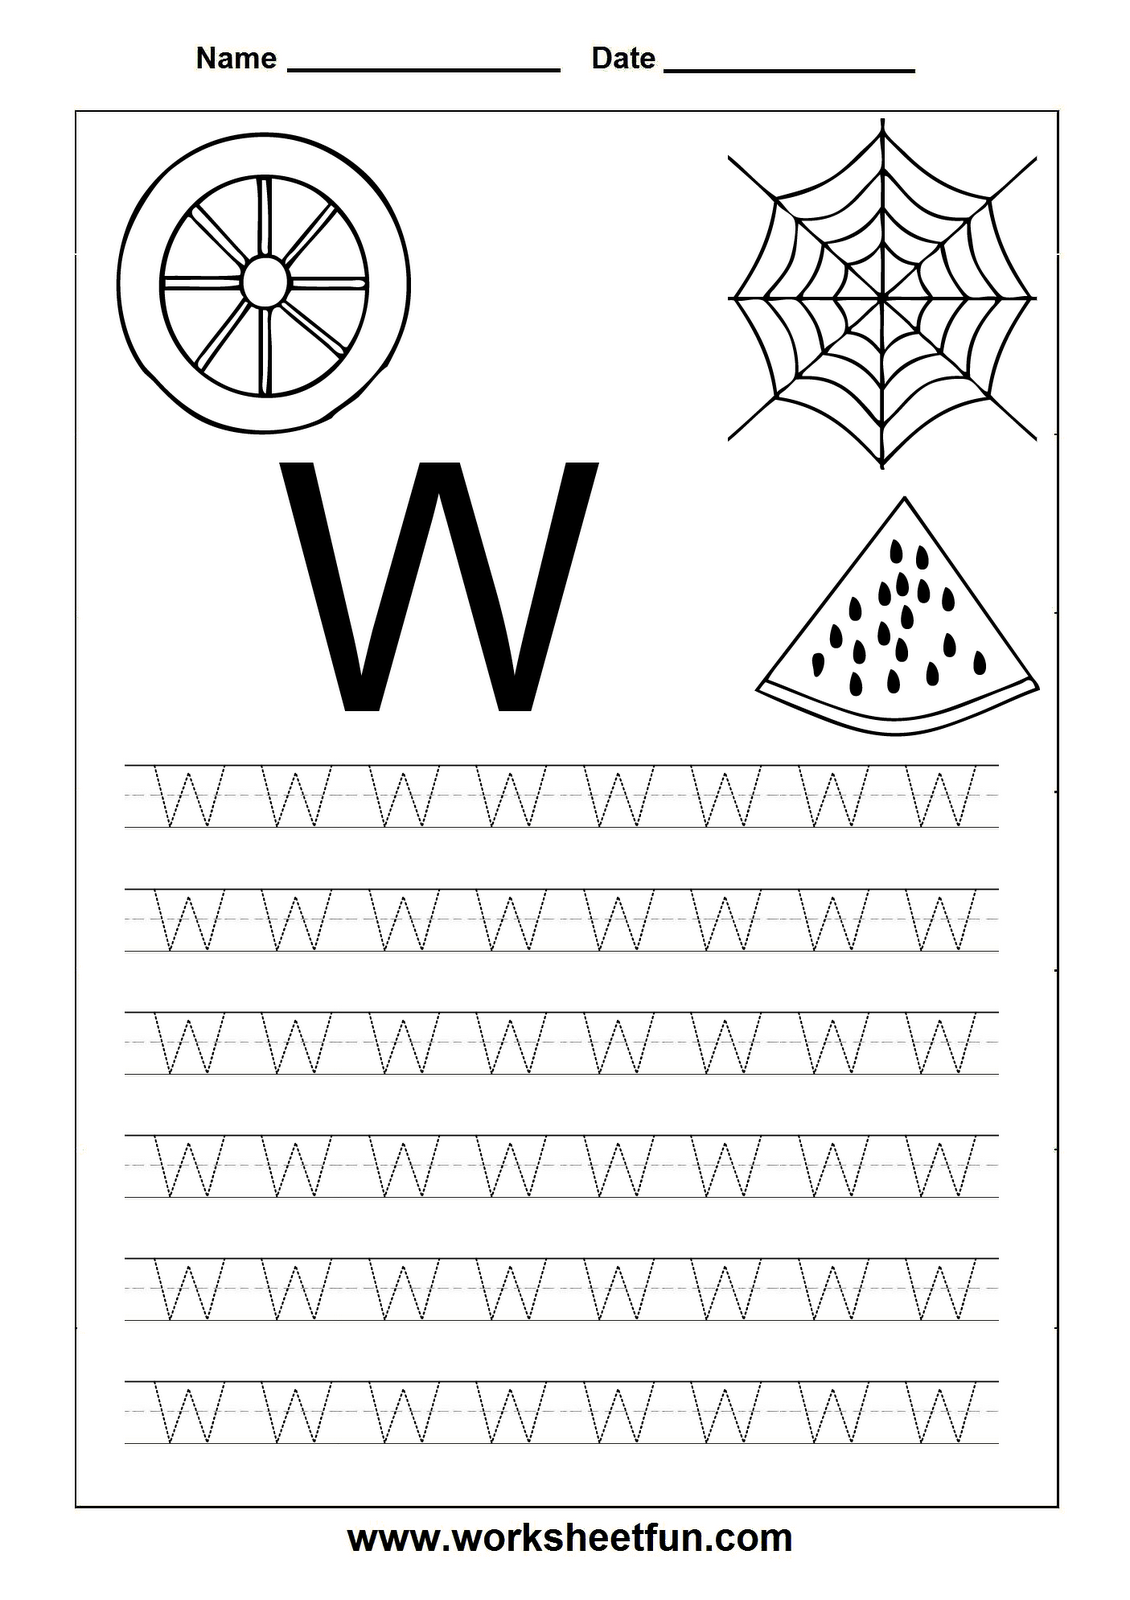 worksheet Letter W Tracing Worksheets free printable worksheets letter tracing for kindergarten capital and small letters alphabet